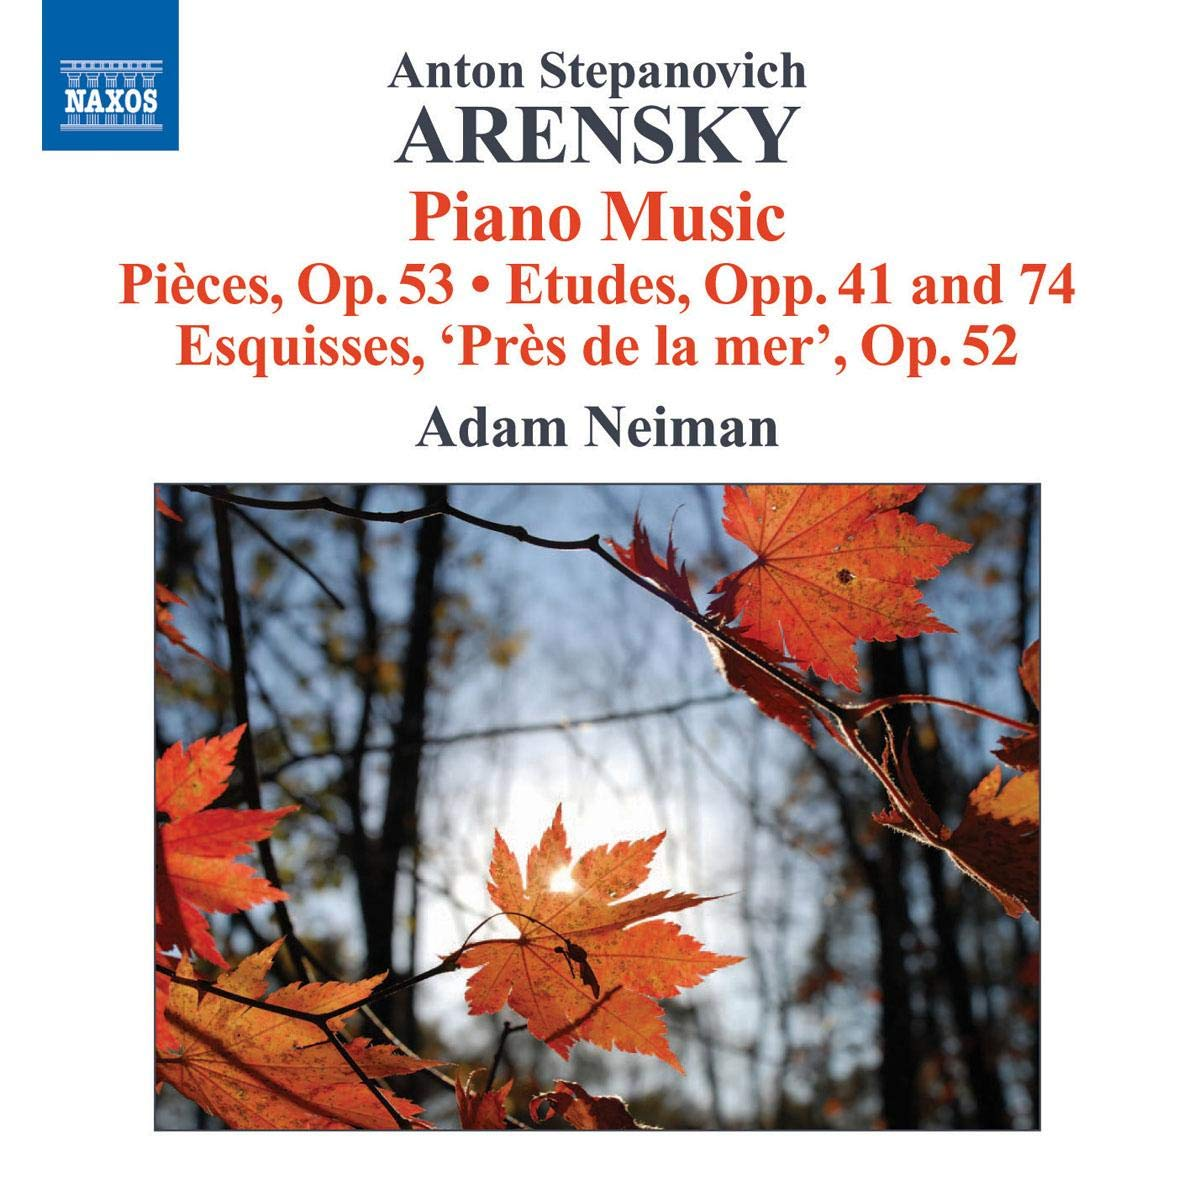 Piano Music: Pieces Milwaukee Mall Ranking integrated 1st place Etudes Esquisses